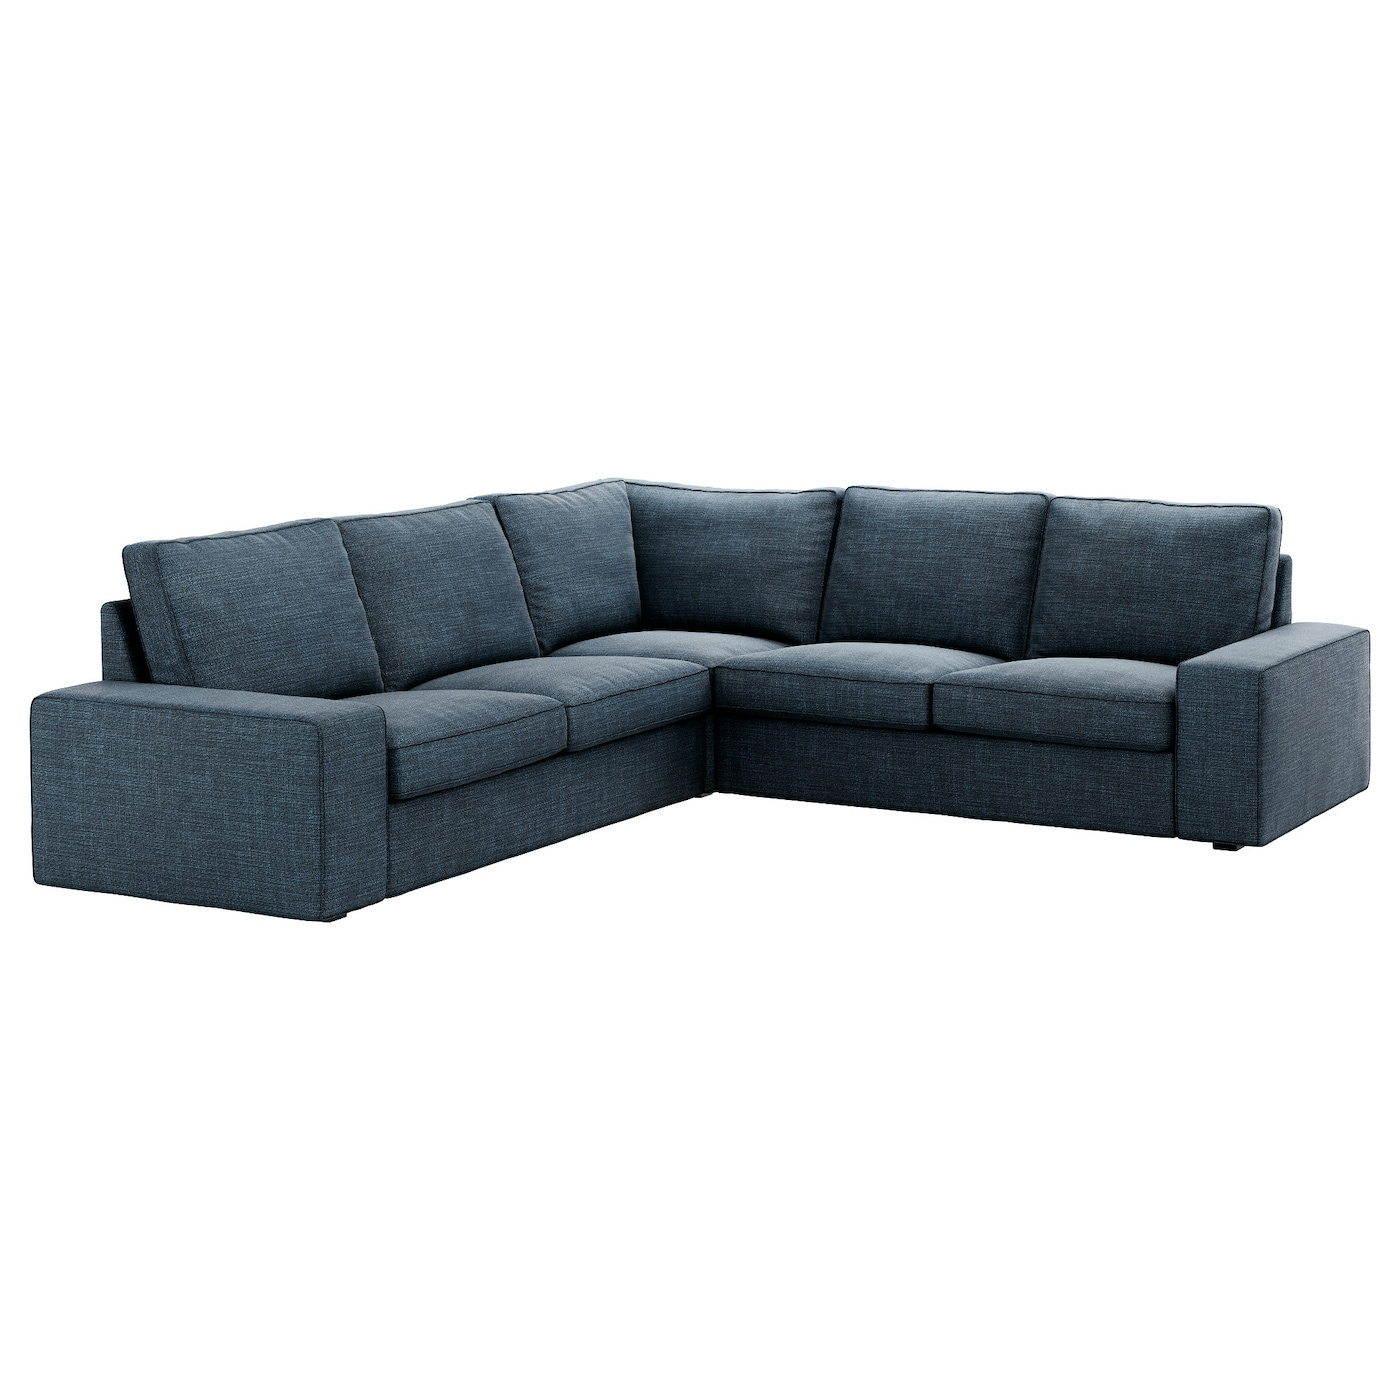 Amazoncom sofas with removable washable covers